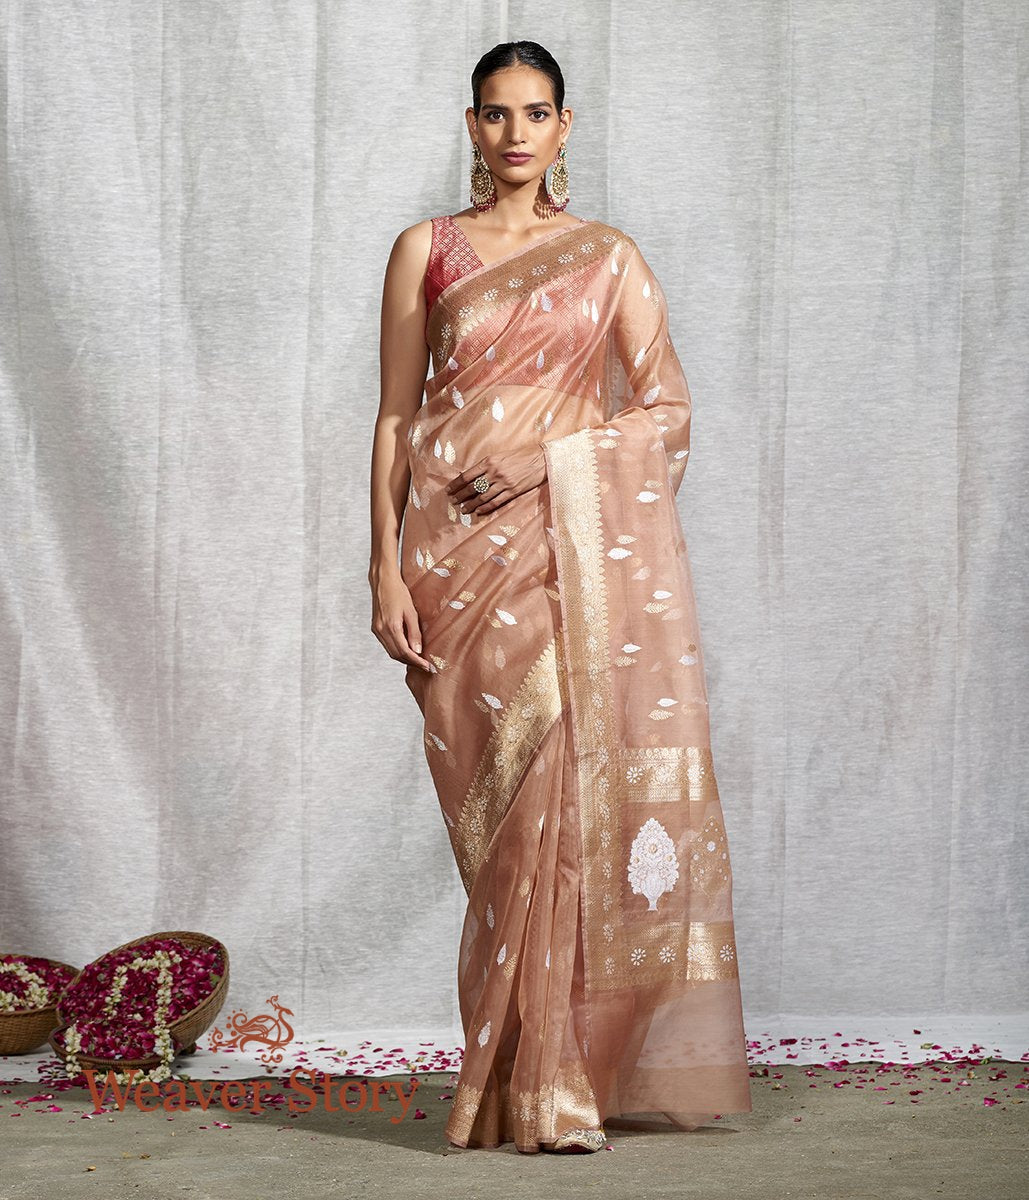 Handwoven Soft Brown Sona Rupa Booti Saree With Floral Border